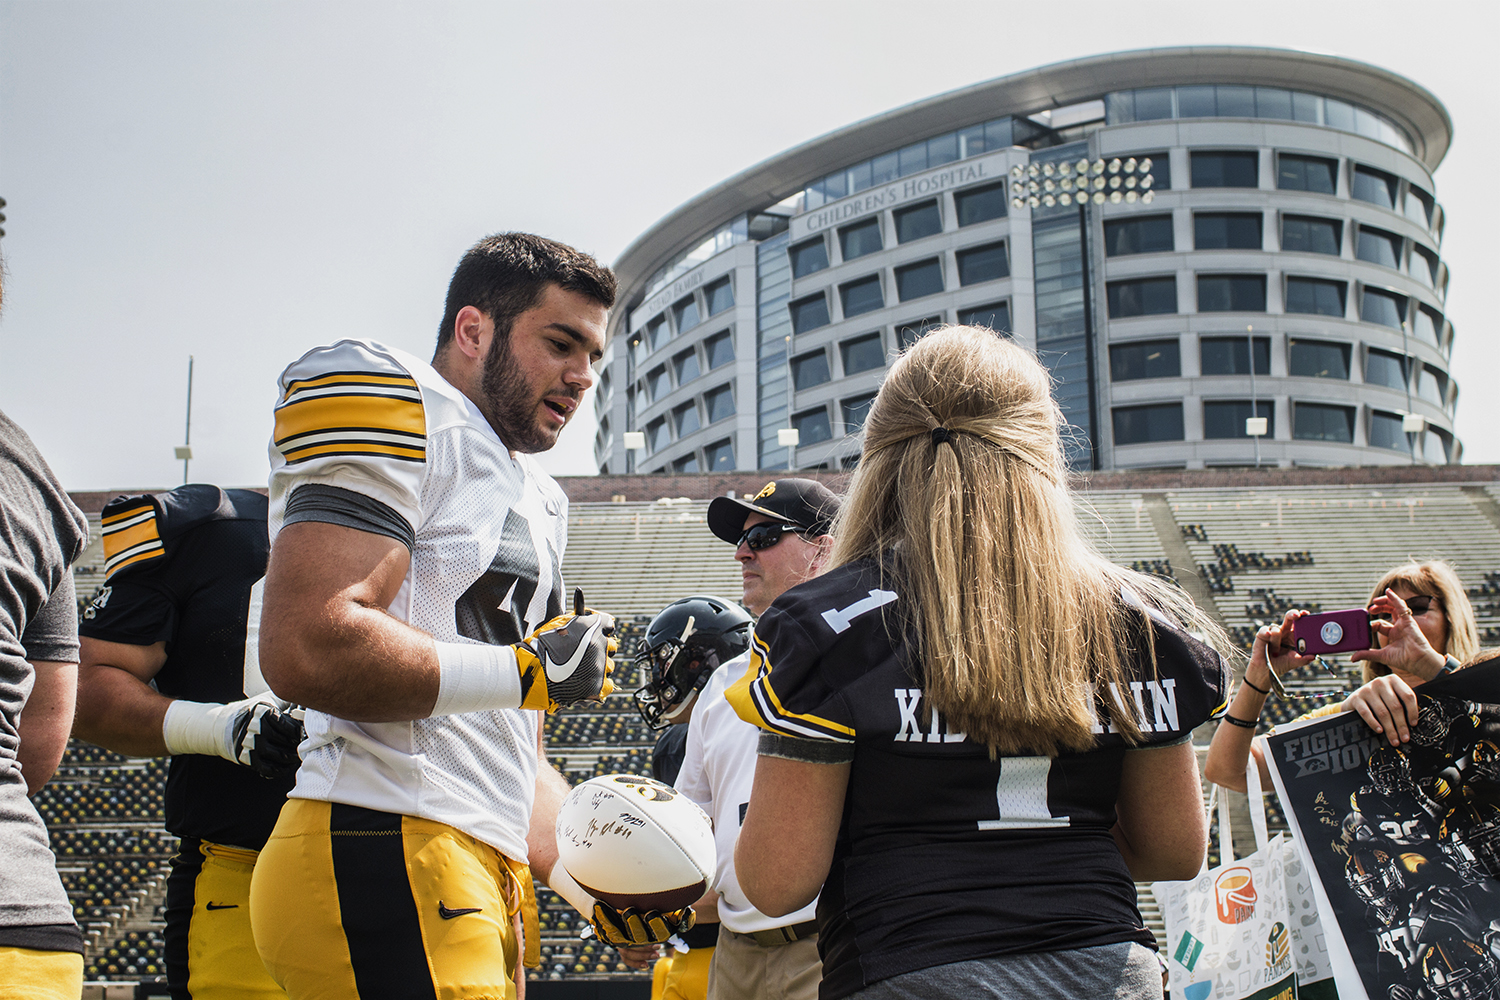 Linebacker+Jack+Hockaday+%28left%29+signs+a+football+for+Kid+Captain+Livia+Jackson+%28right%29+during+Iowa+Football+Kids%27+Day+at+Kinnick+Stadium+on+Saturday%2C+Aug.+11%2C+2018.+